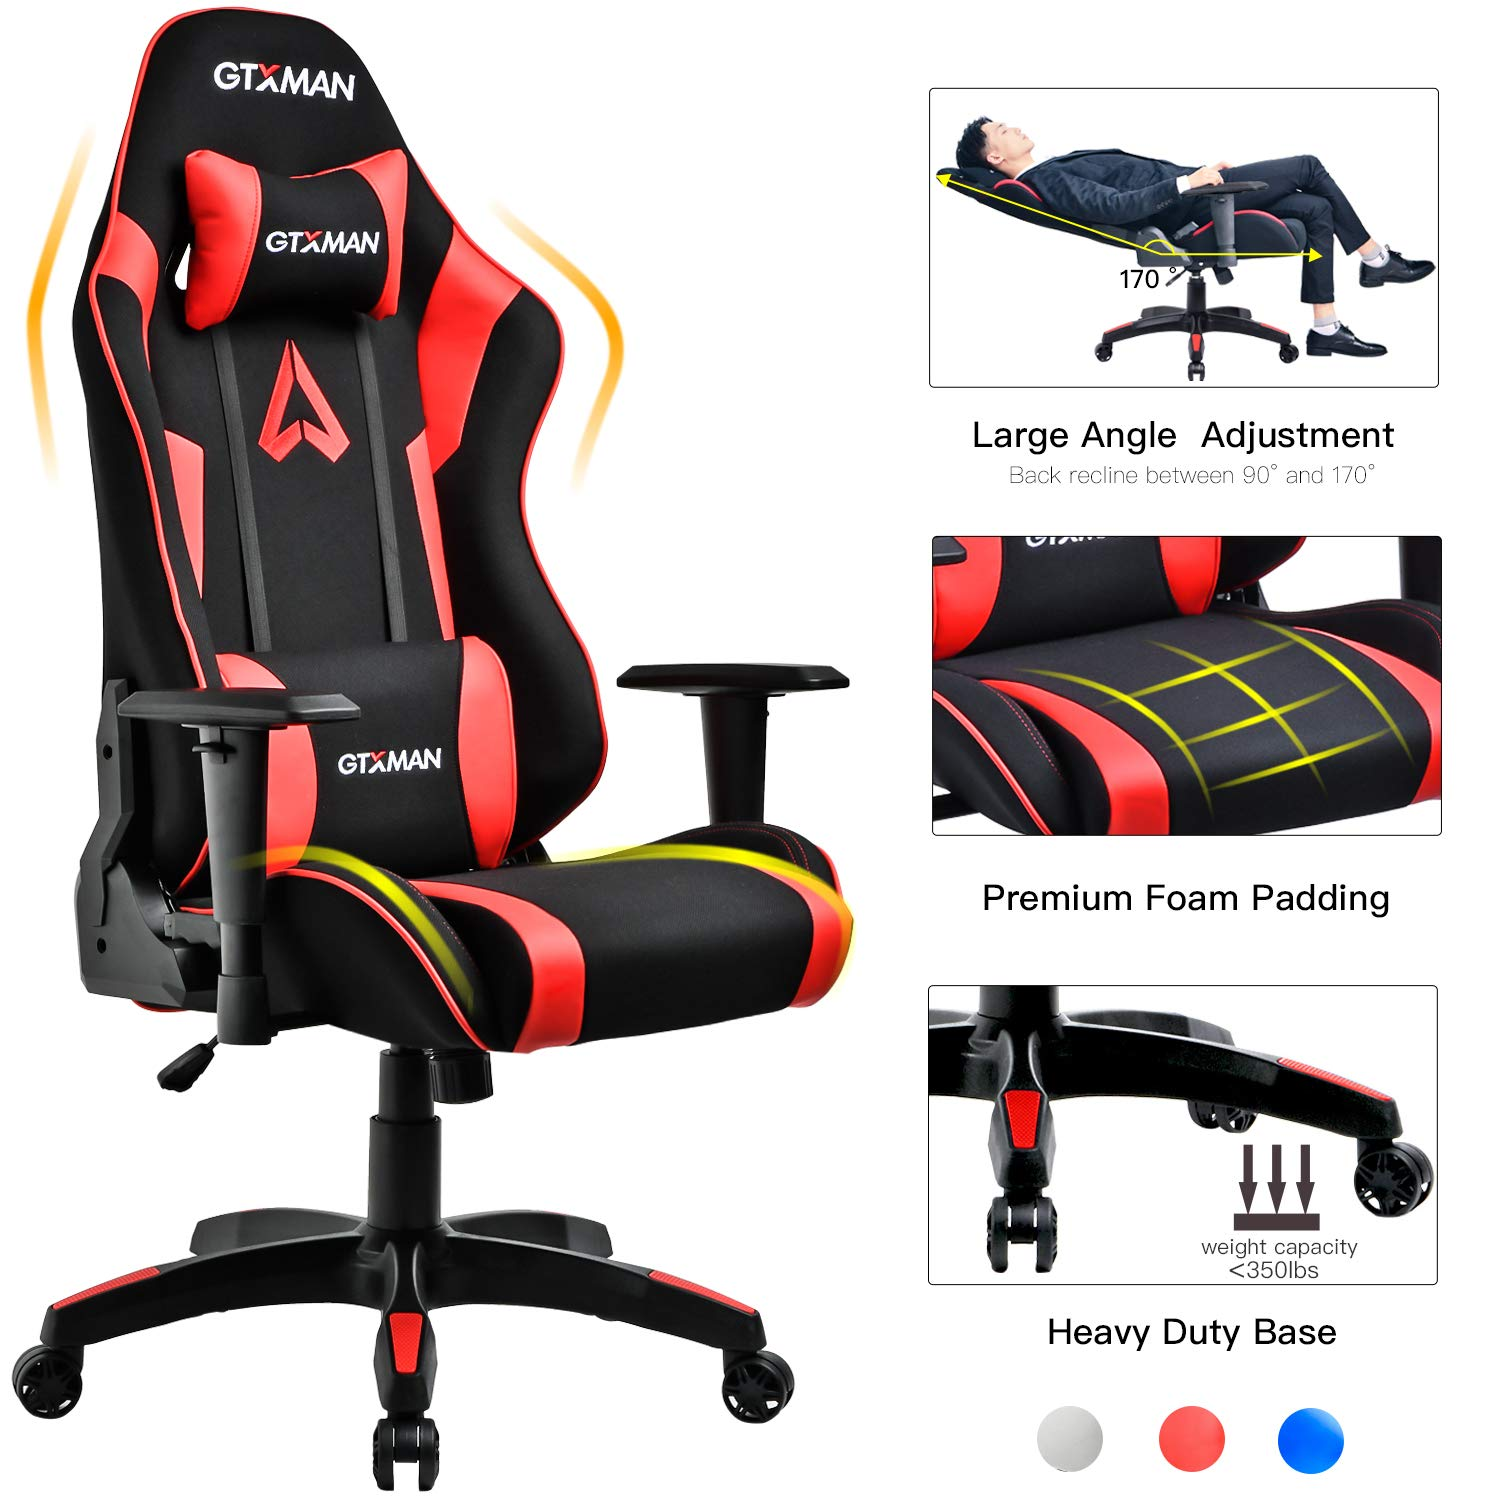 GTXMAN Gaming Chair Racing Style Office Chair Video Game Chair Breathable Mesh Chair Ergonomic Heavy Duty 350lbs Esports Chair Red by GTXMAN